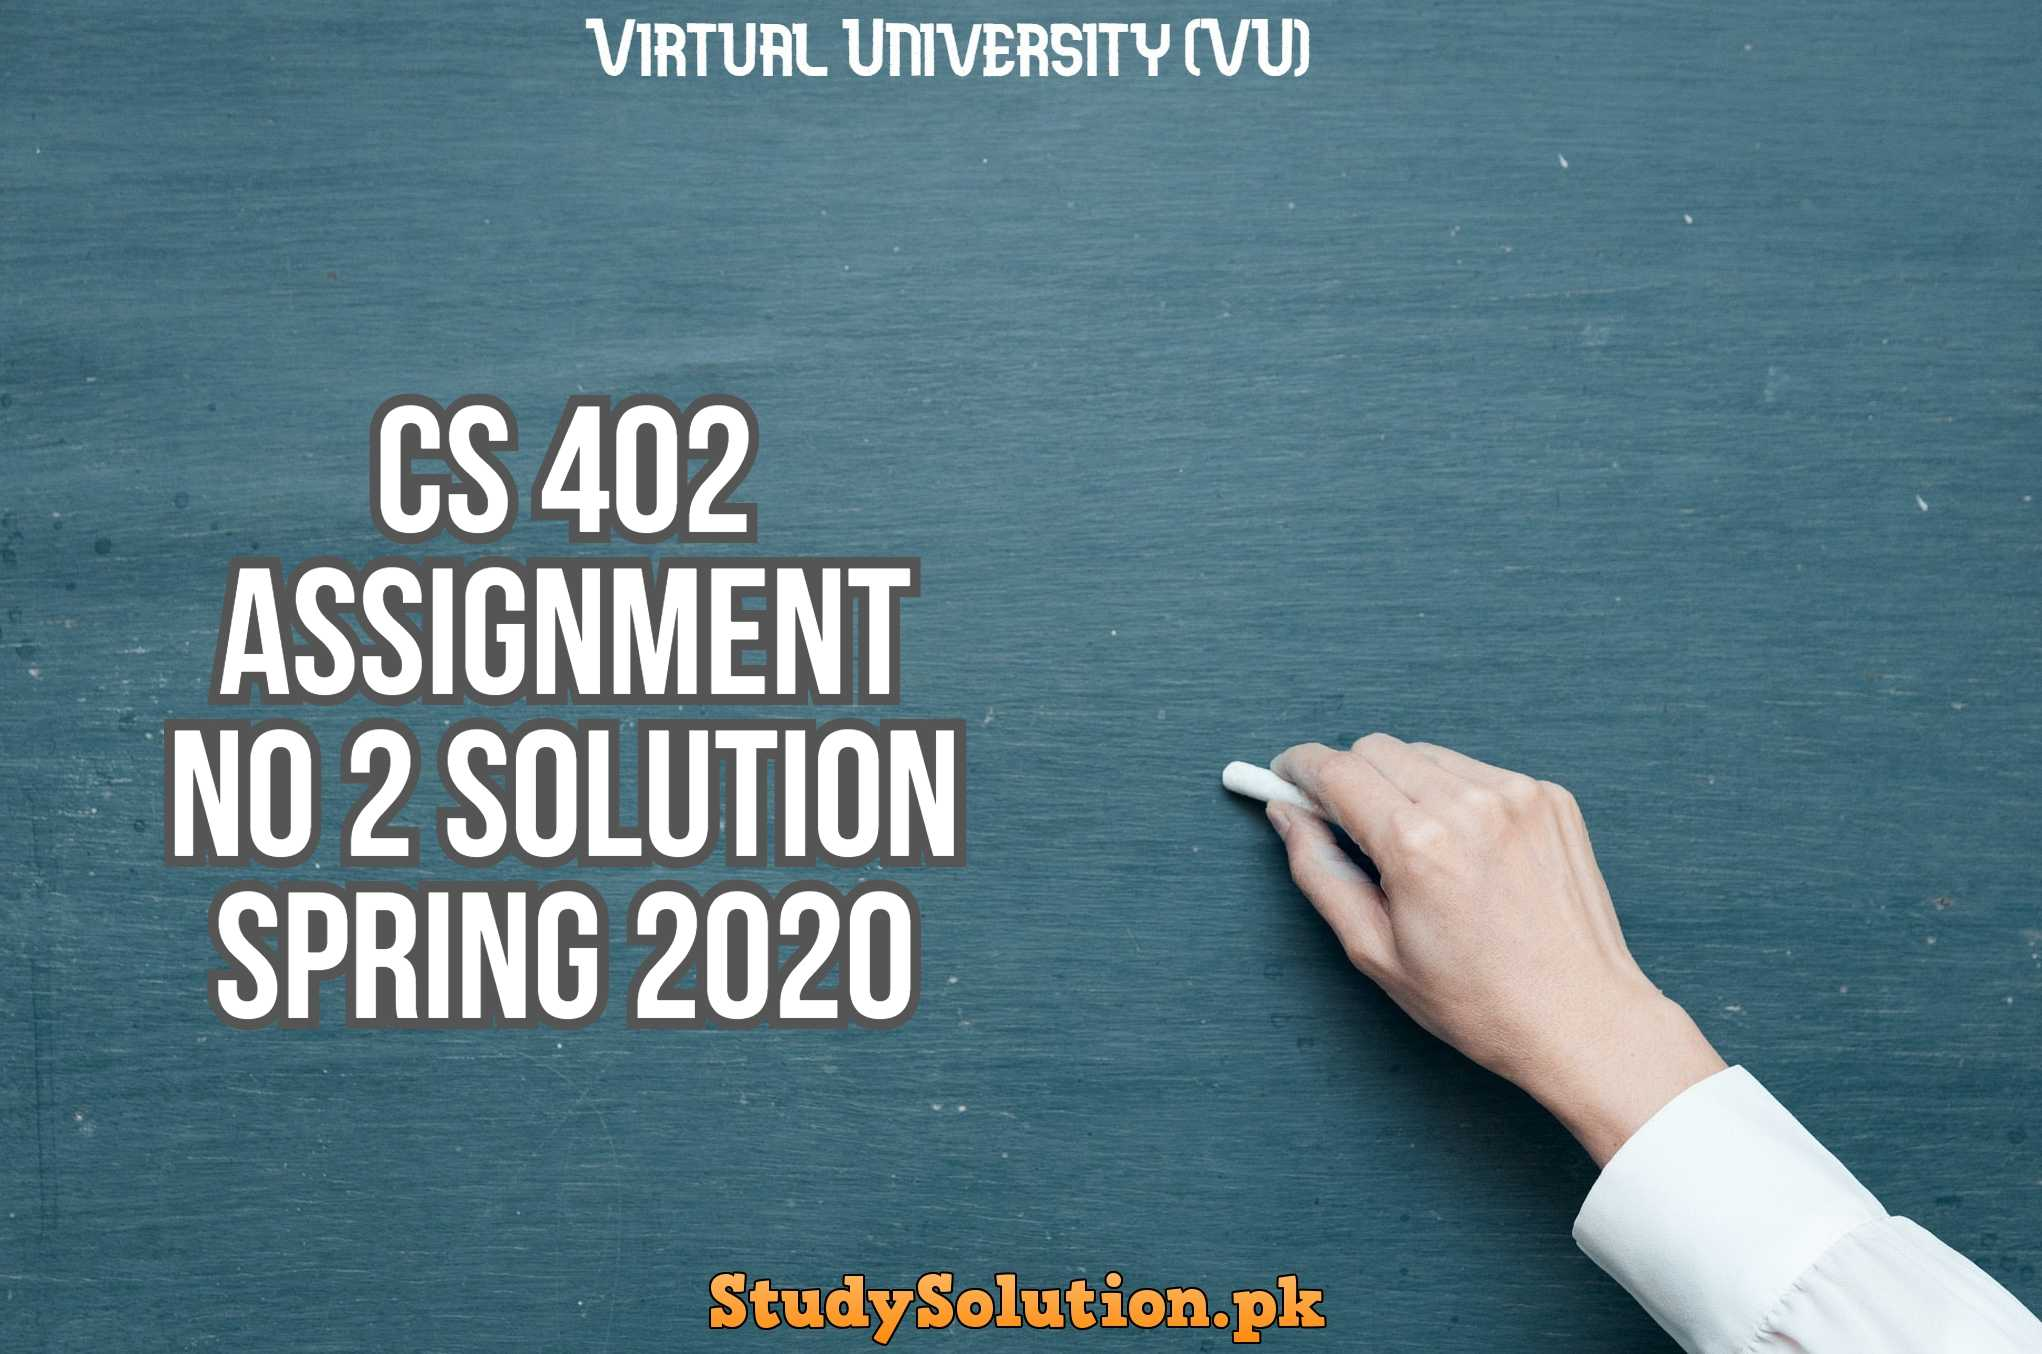 CS 402 Assignment No 2 Solution Spring 2020